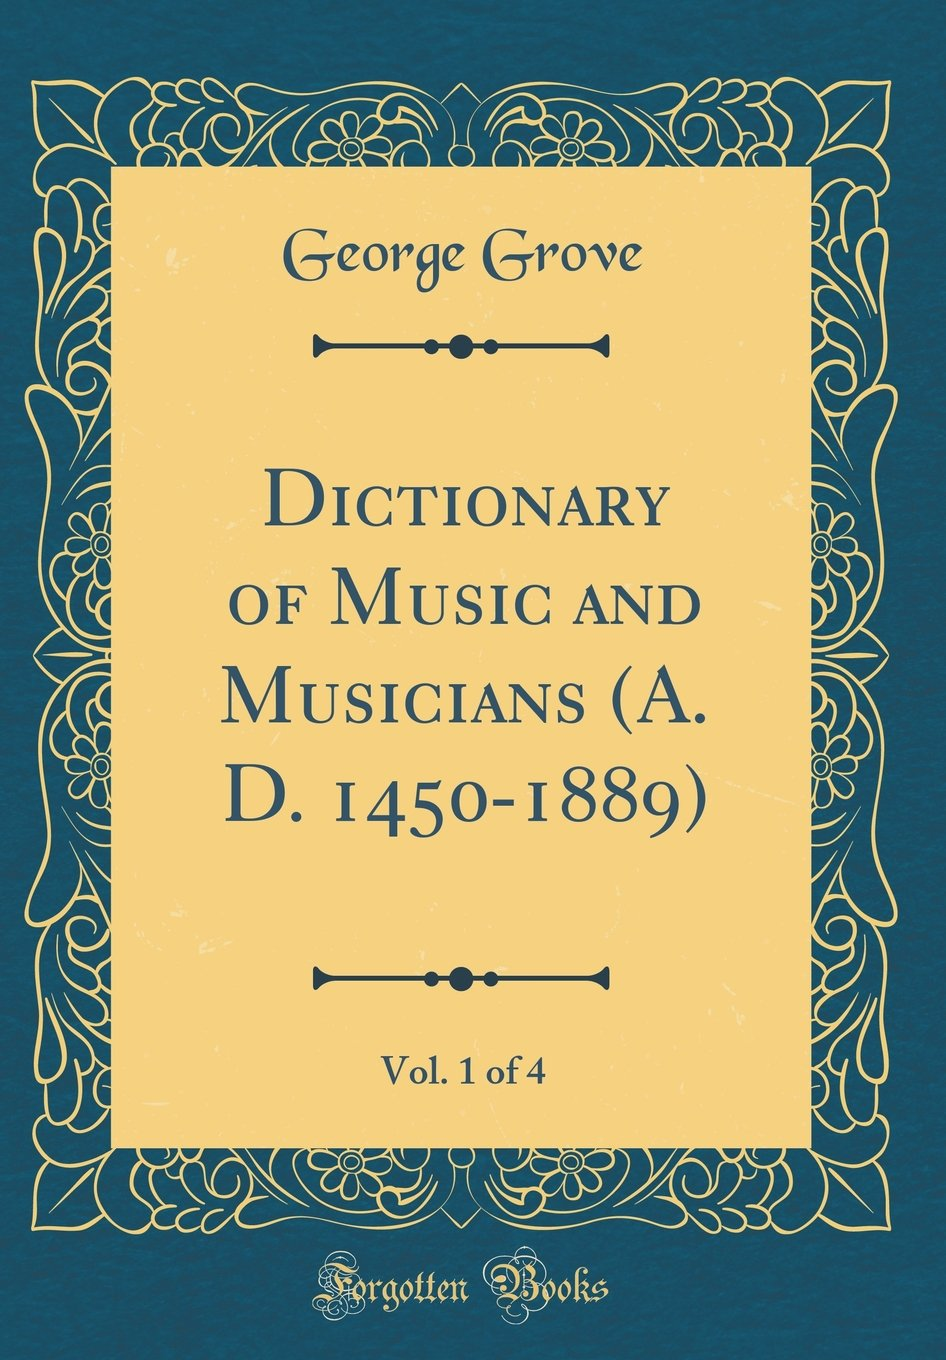 Dictionary of Music and Musicians (A. D. 1450-1889), Vol. 1 of 4 (Classic Reprint) pdf